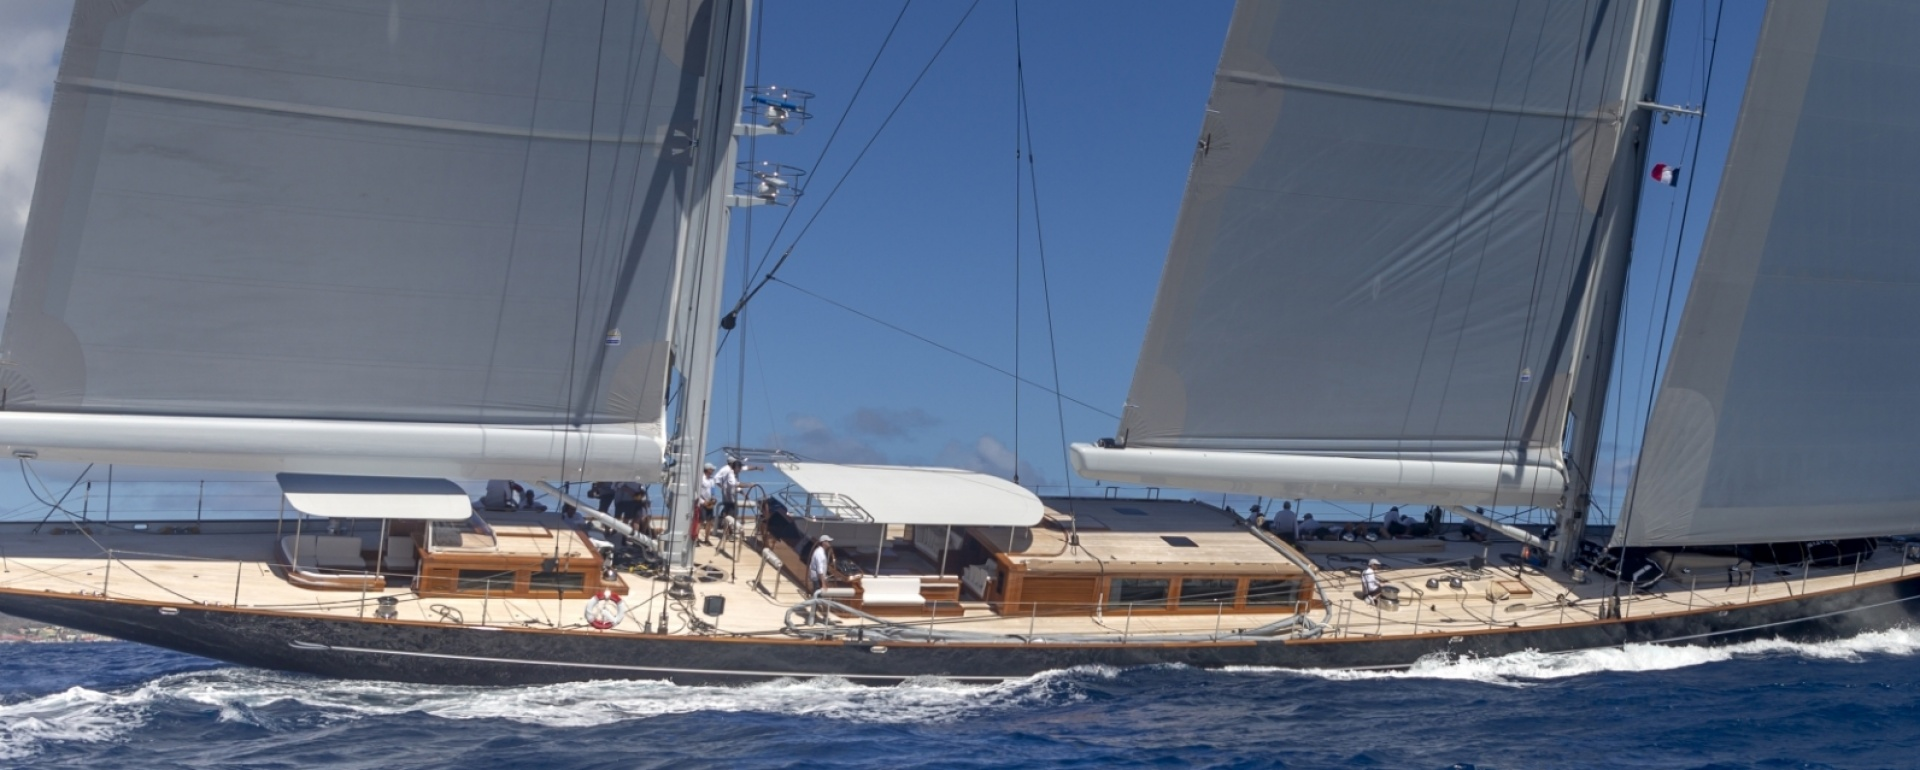 Solico featured in Ship & Boat International